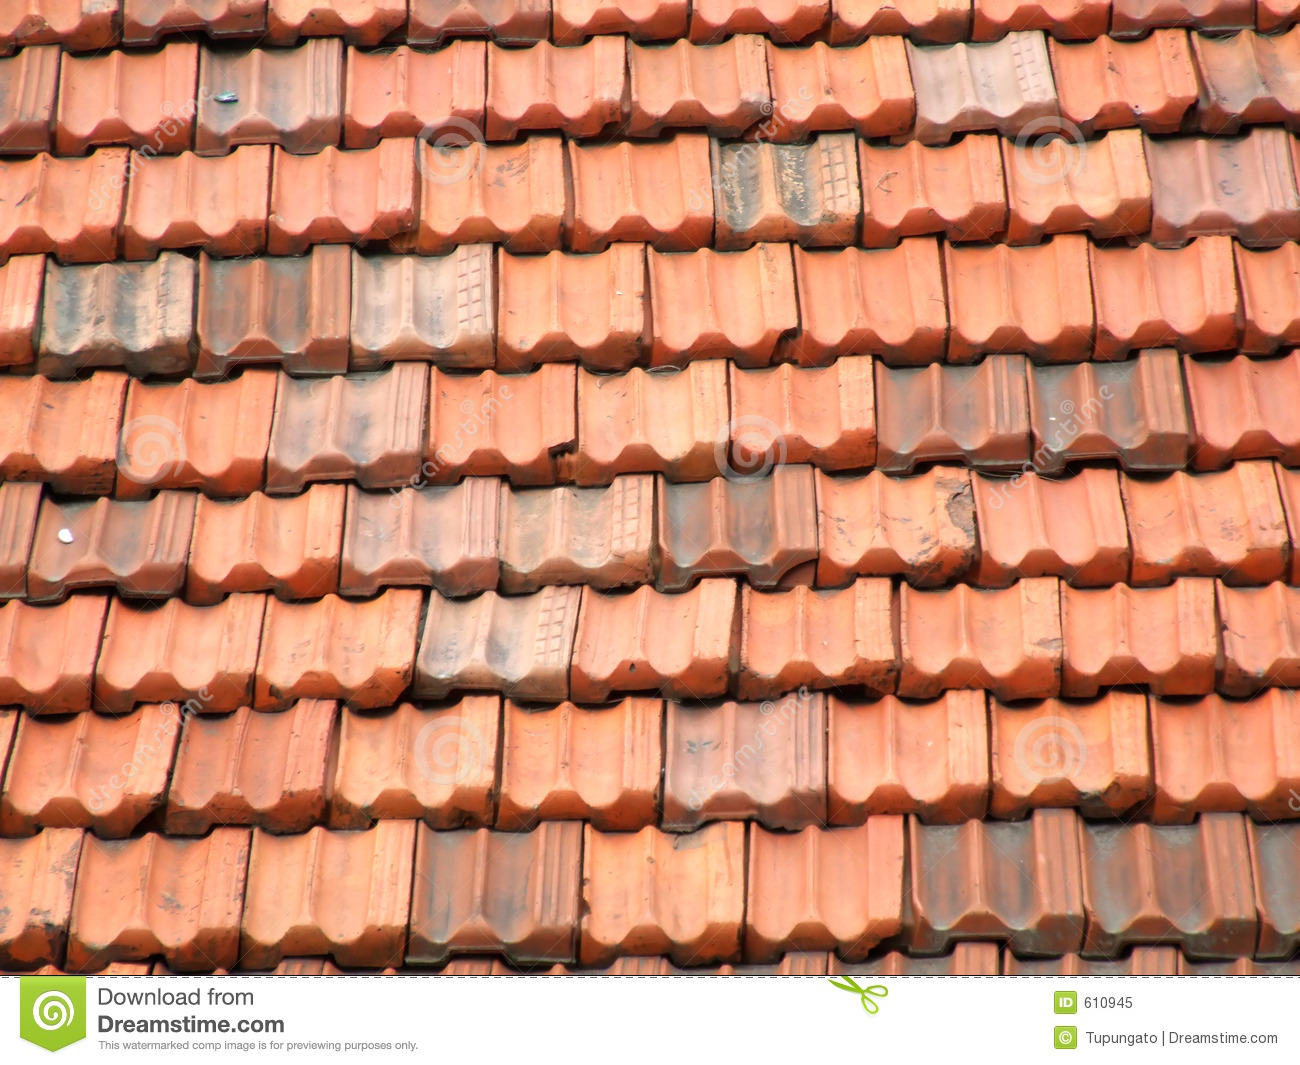 Relatively Red and orange roof tiles stock image. Image of abstract - 610945 BR12